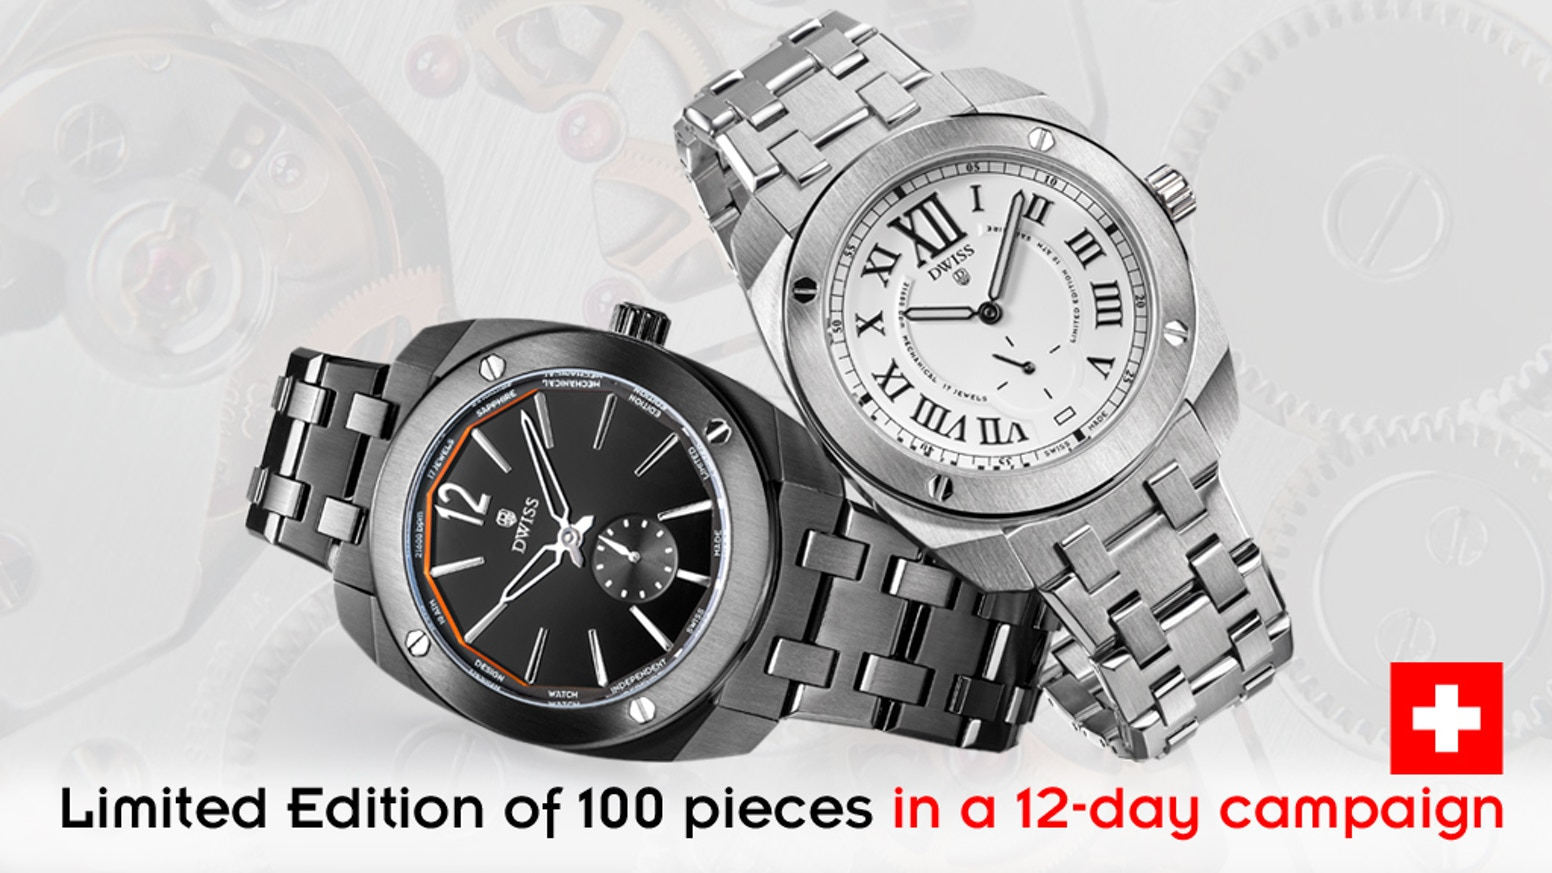 Make 100 Top Grade Swiss Made Mechanical Hand Wound Watches By Dwiss Pins 457 And 8 Will Carry The Power It Could Be Only Two Of These After Raising More Than 600k This Design Awarded Company Is Back With A Luxury